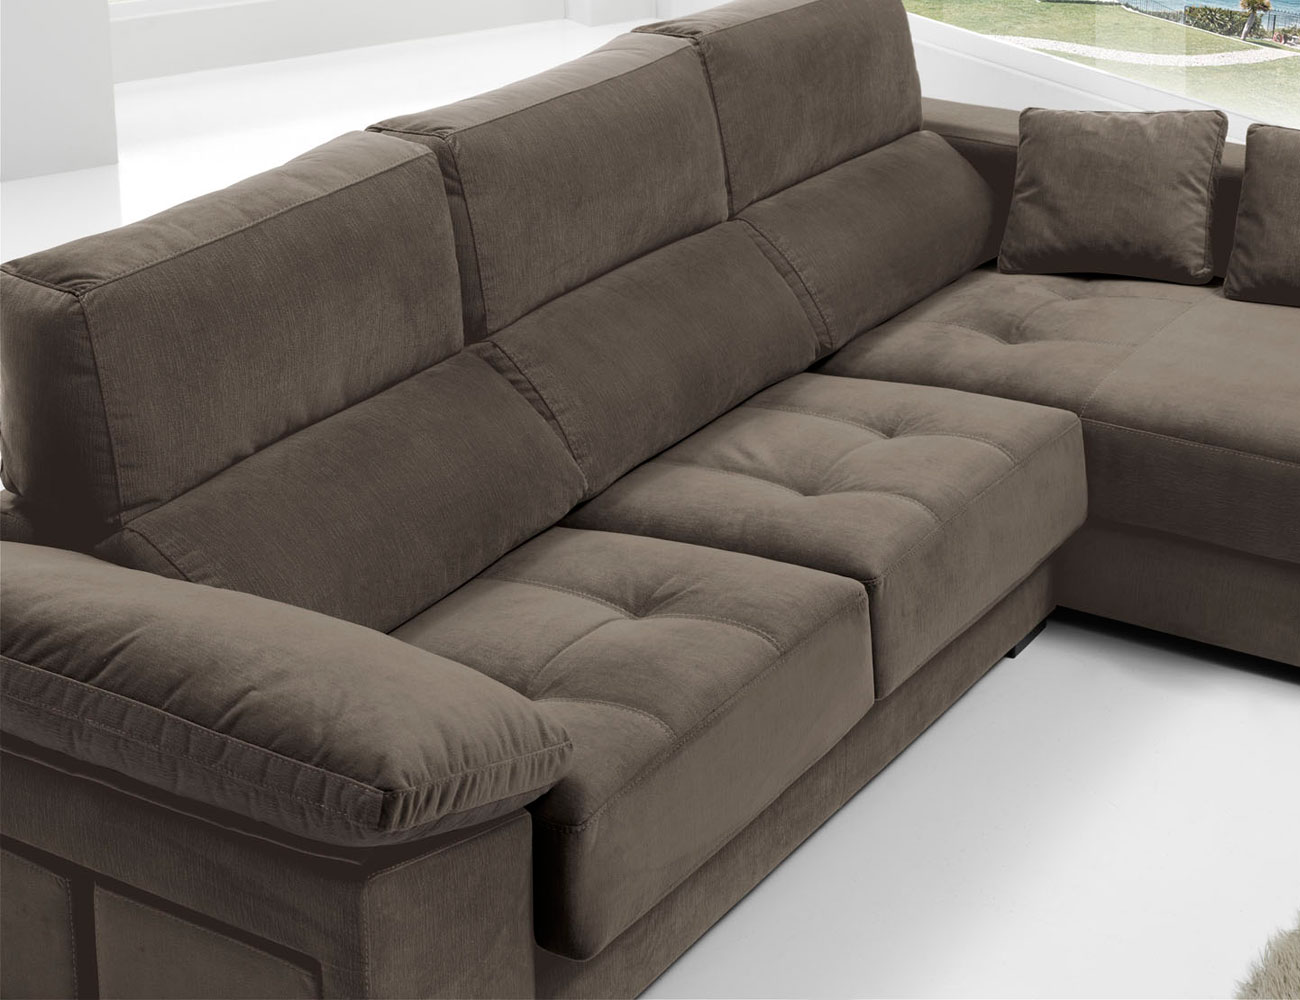 Sofa chaiselongue anti manchas bering pouf 248